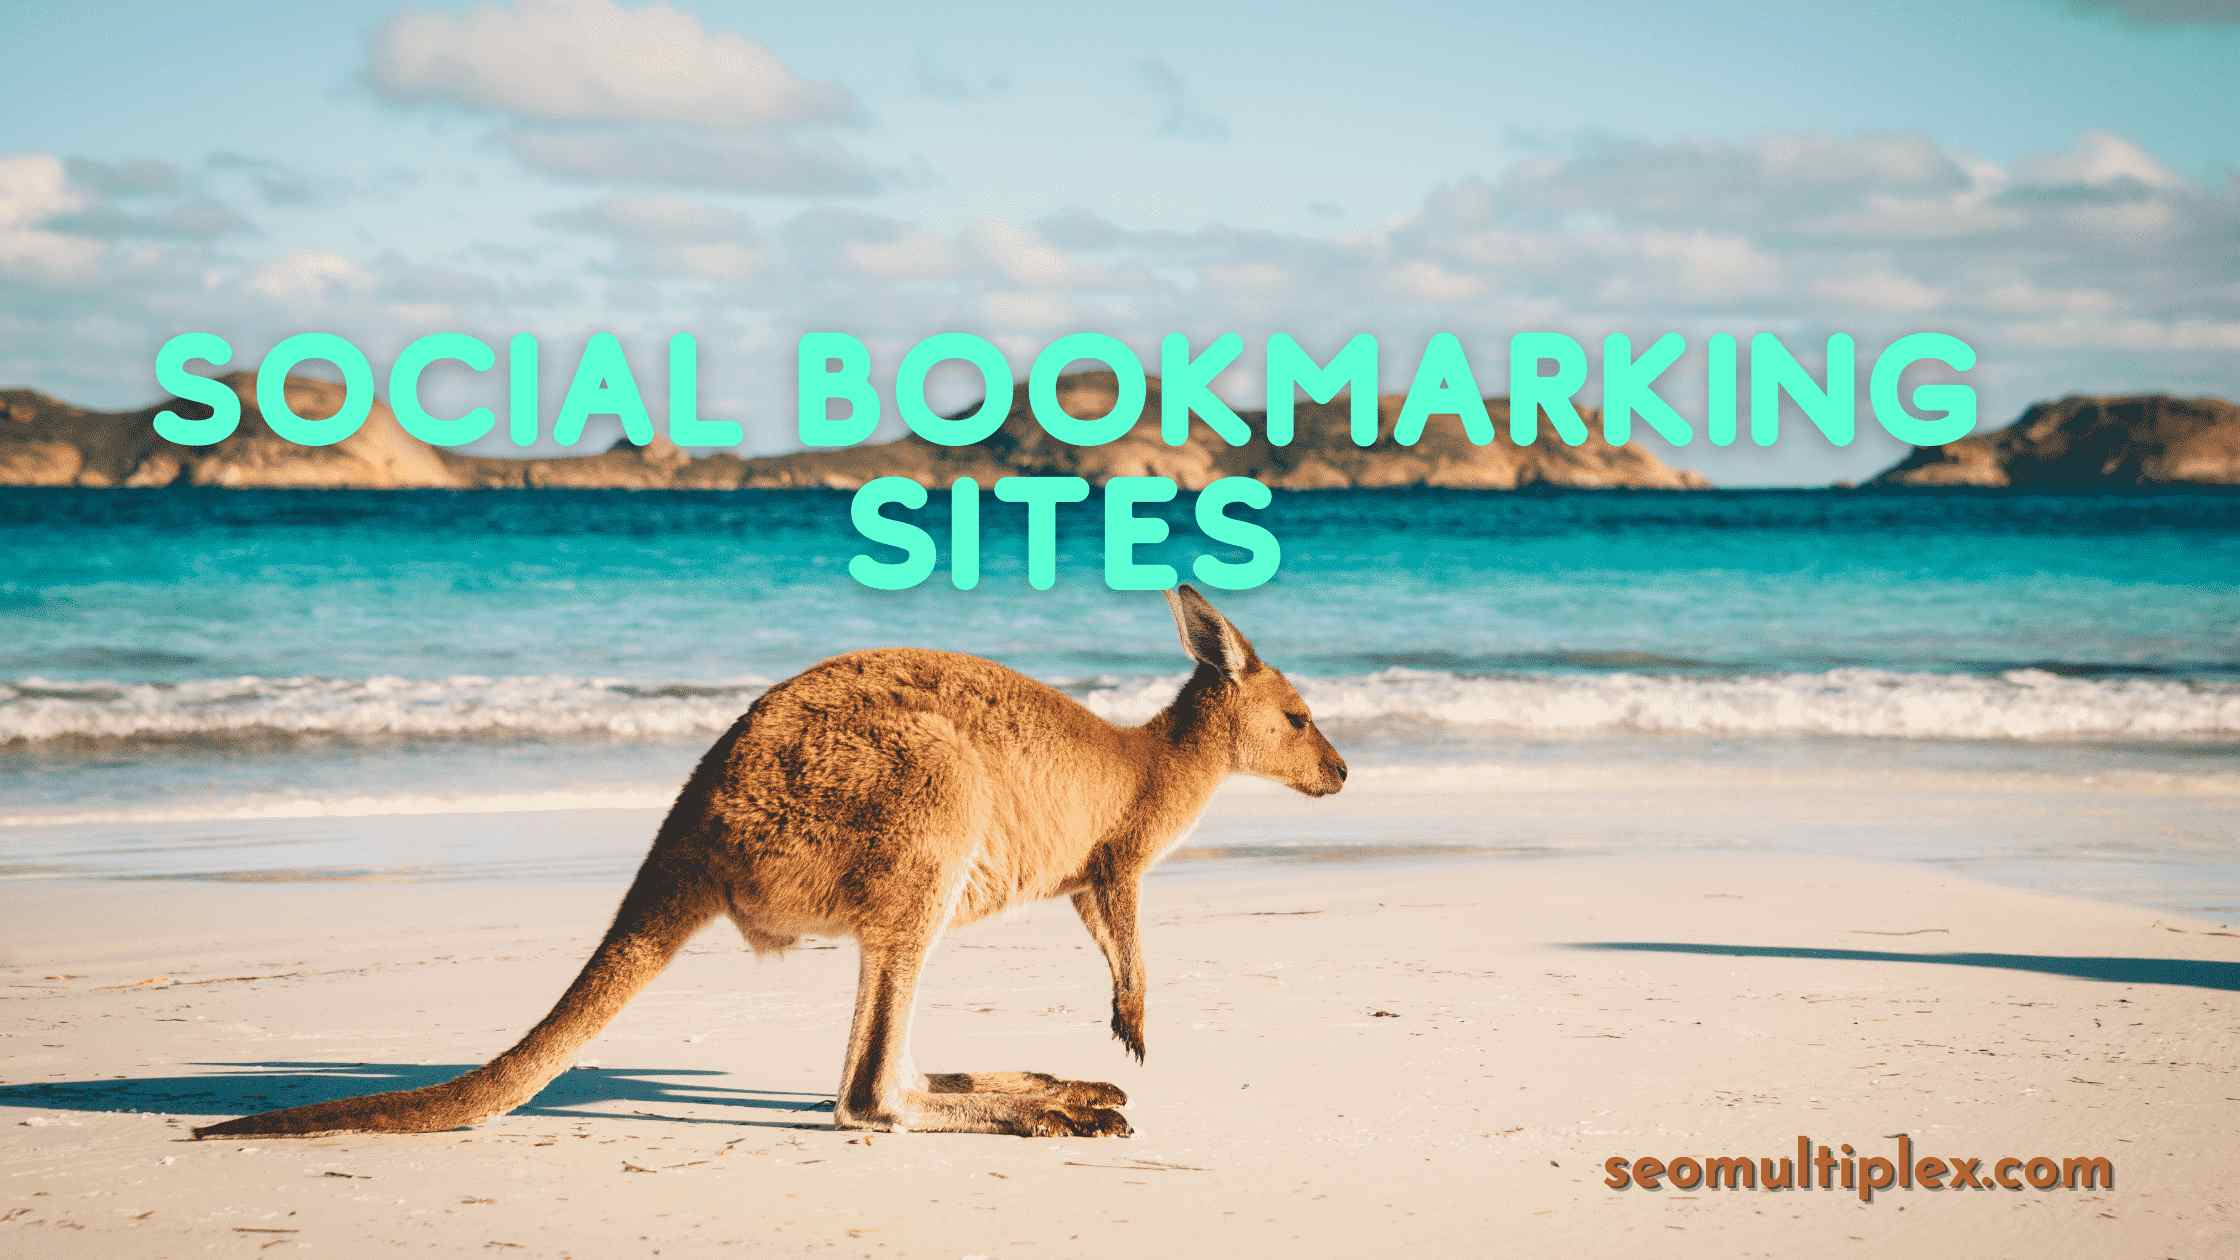 Social Bookmarking Sites in Australia